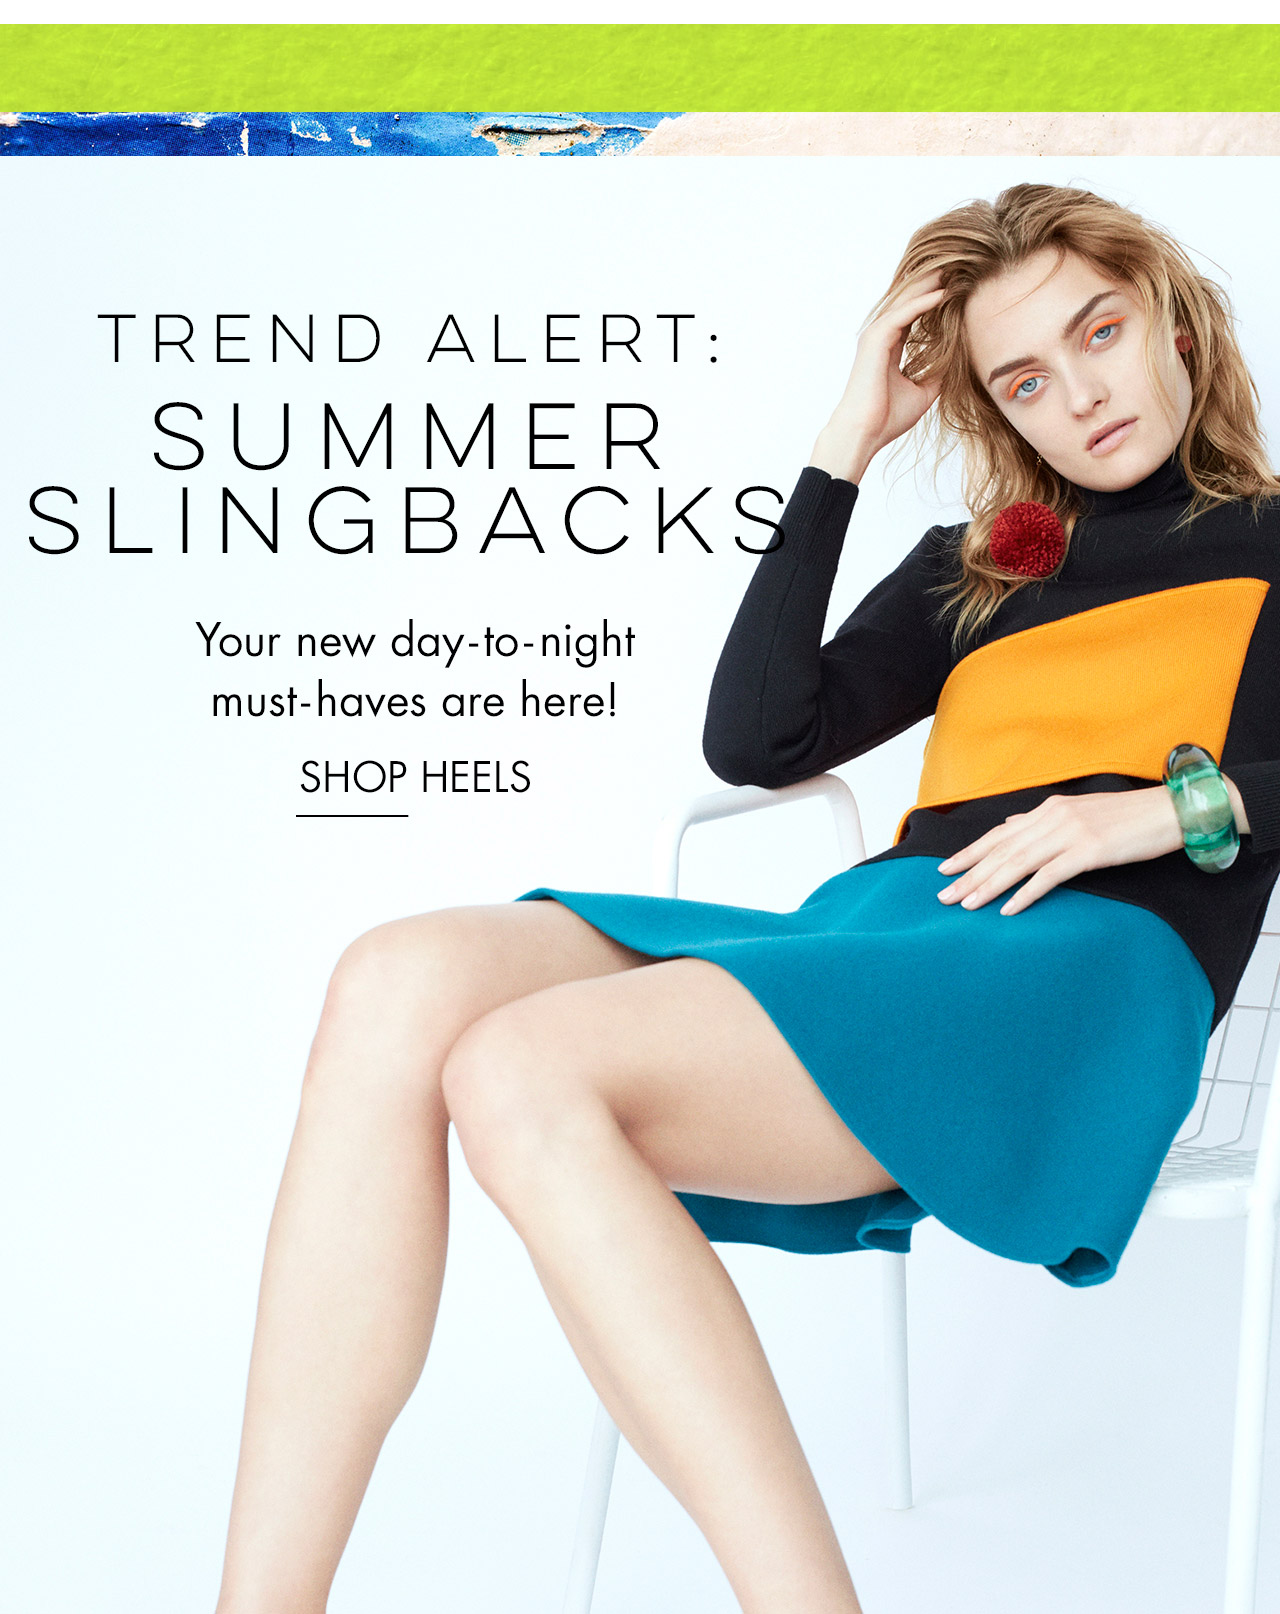 Trend Alert - Summer Slingbacks - Shop Heels